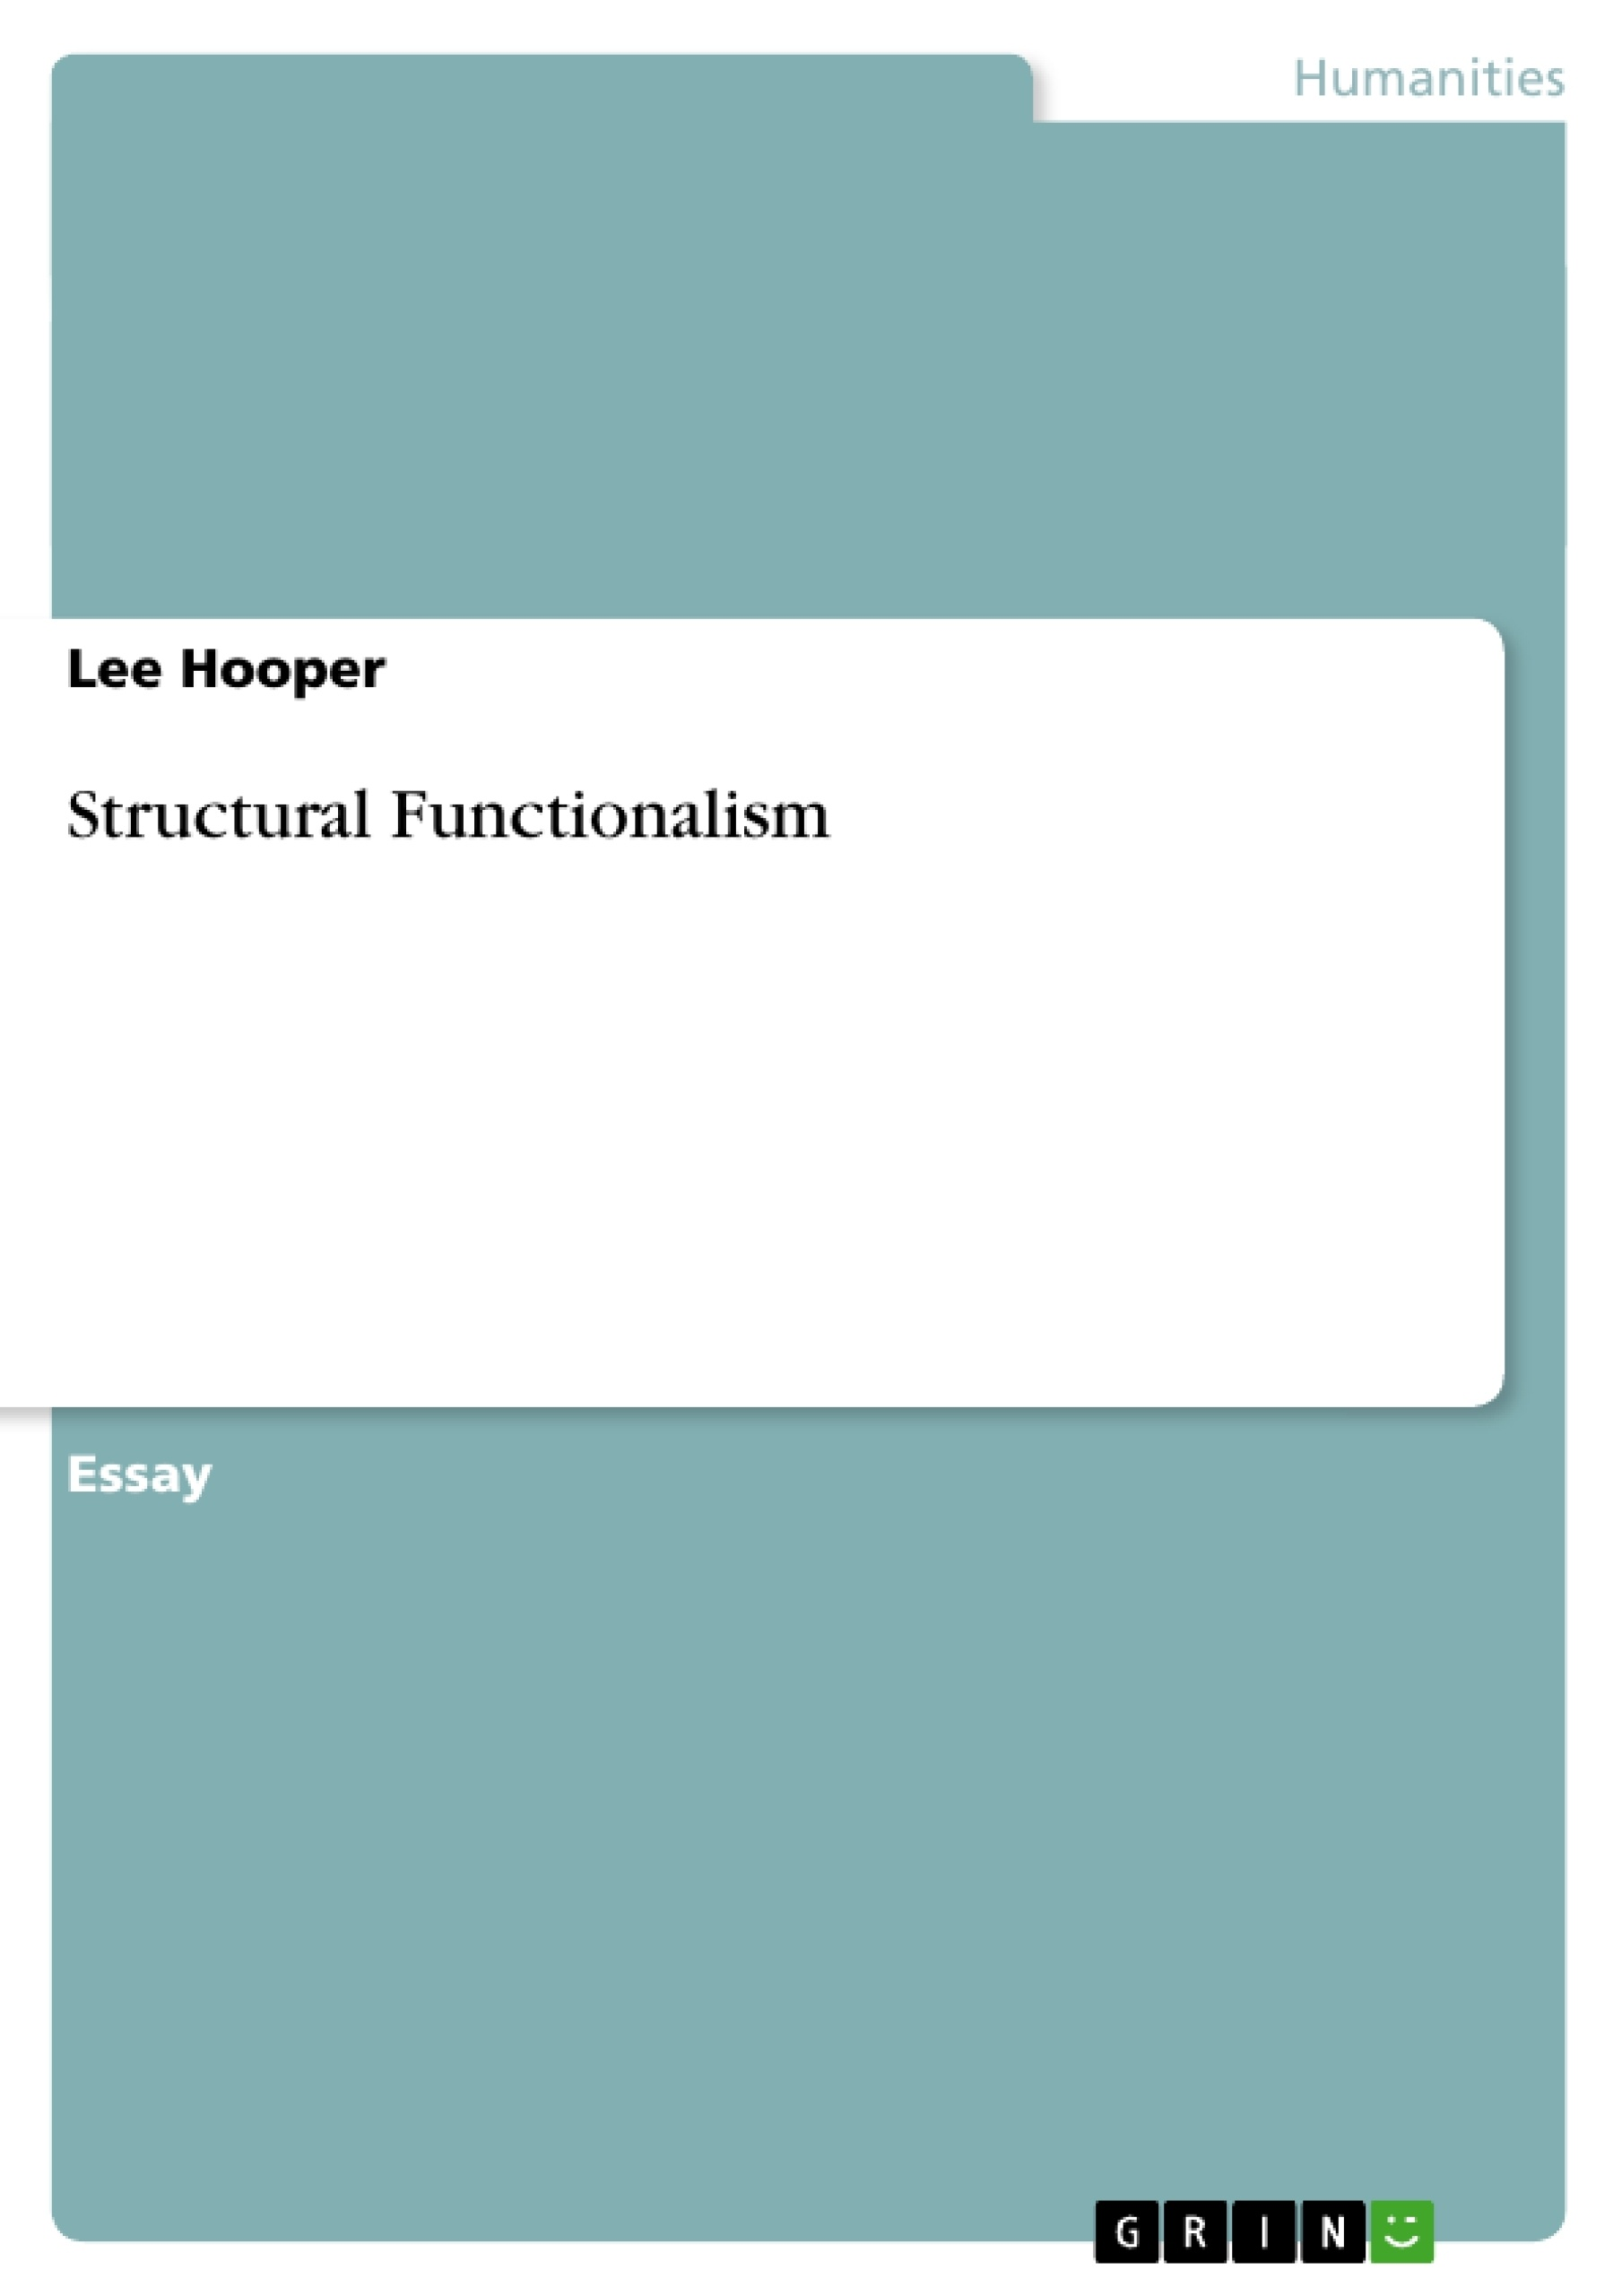 Title: Structural Functionalism